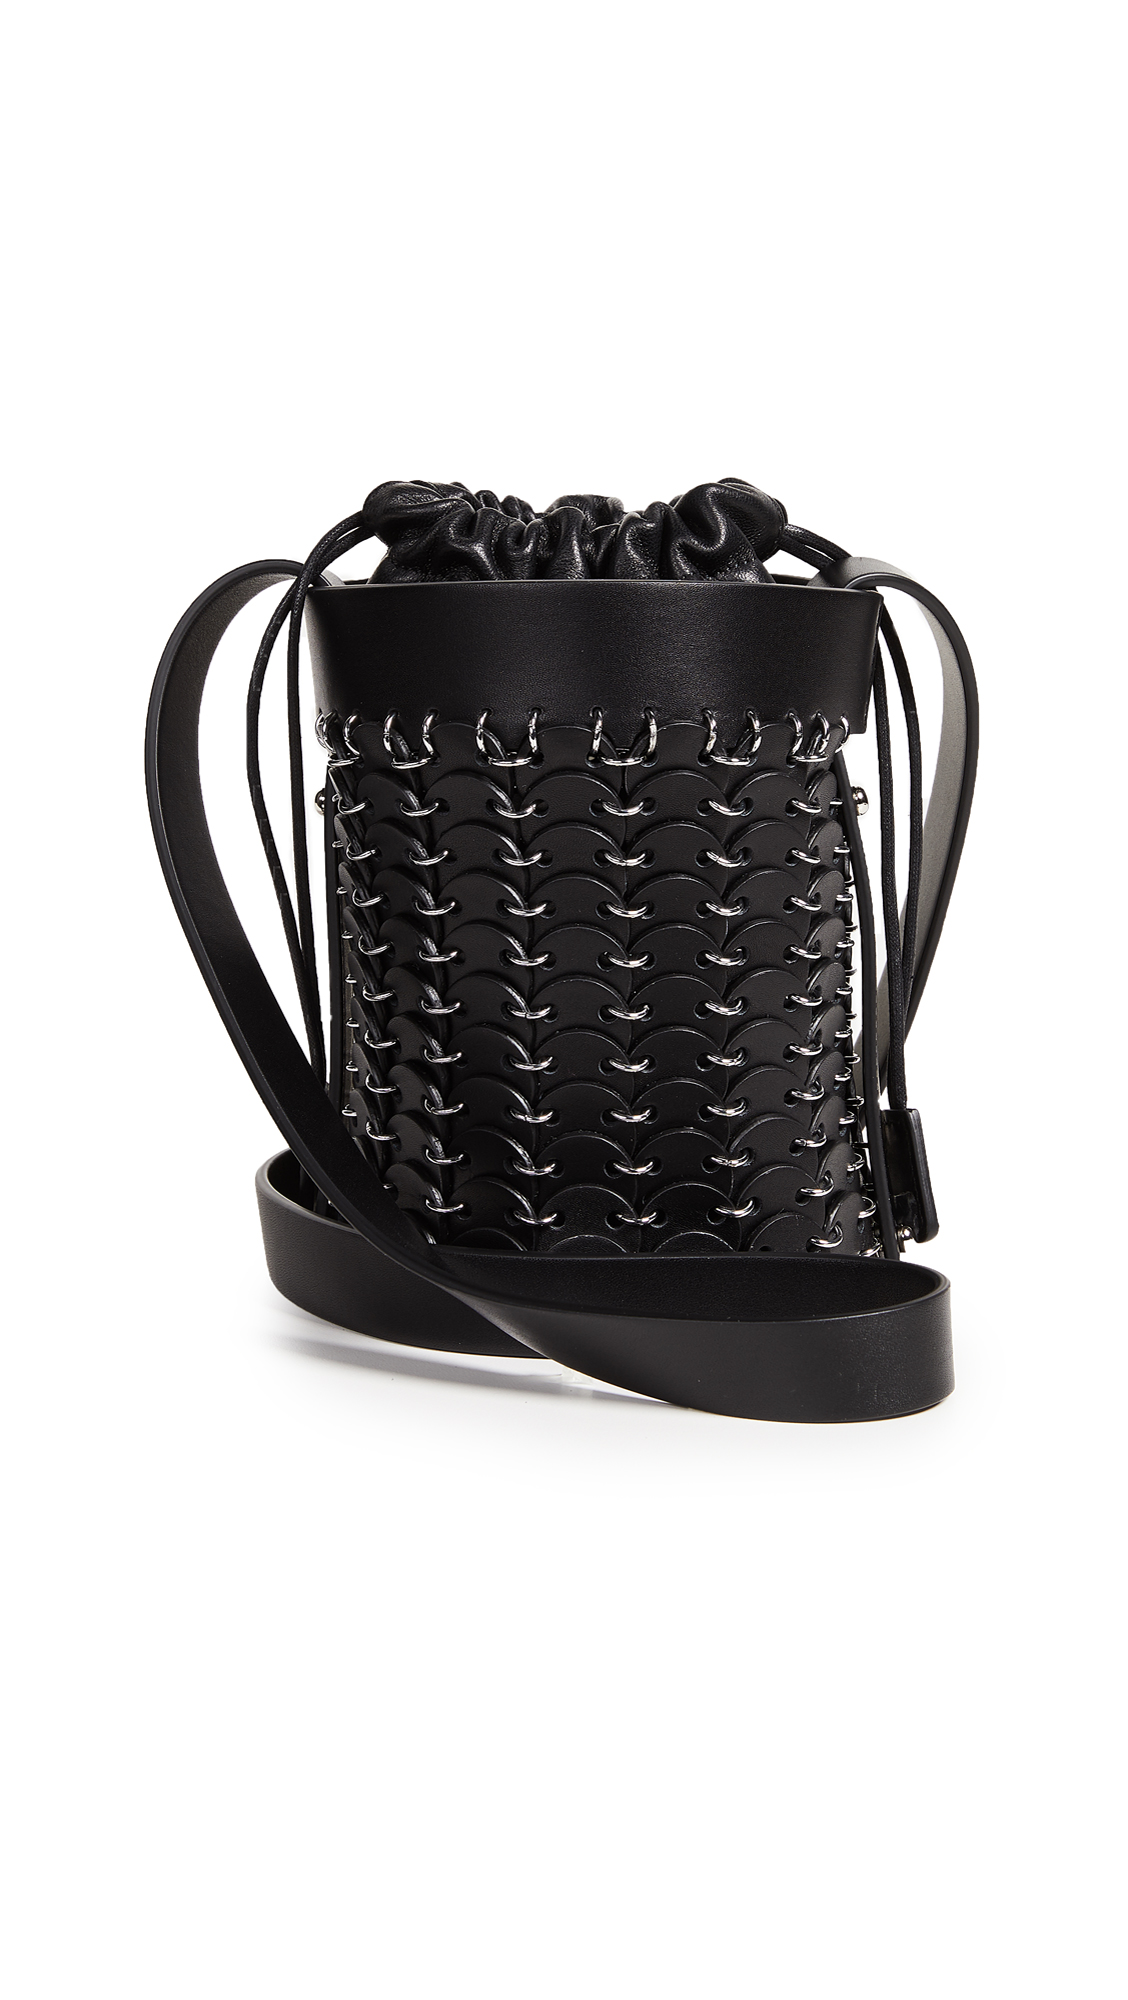 Paco Rabanne Mini Bucket Bag